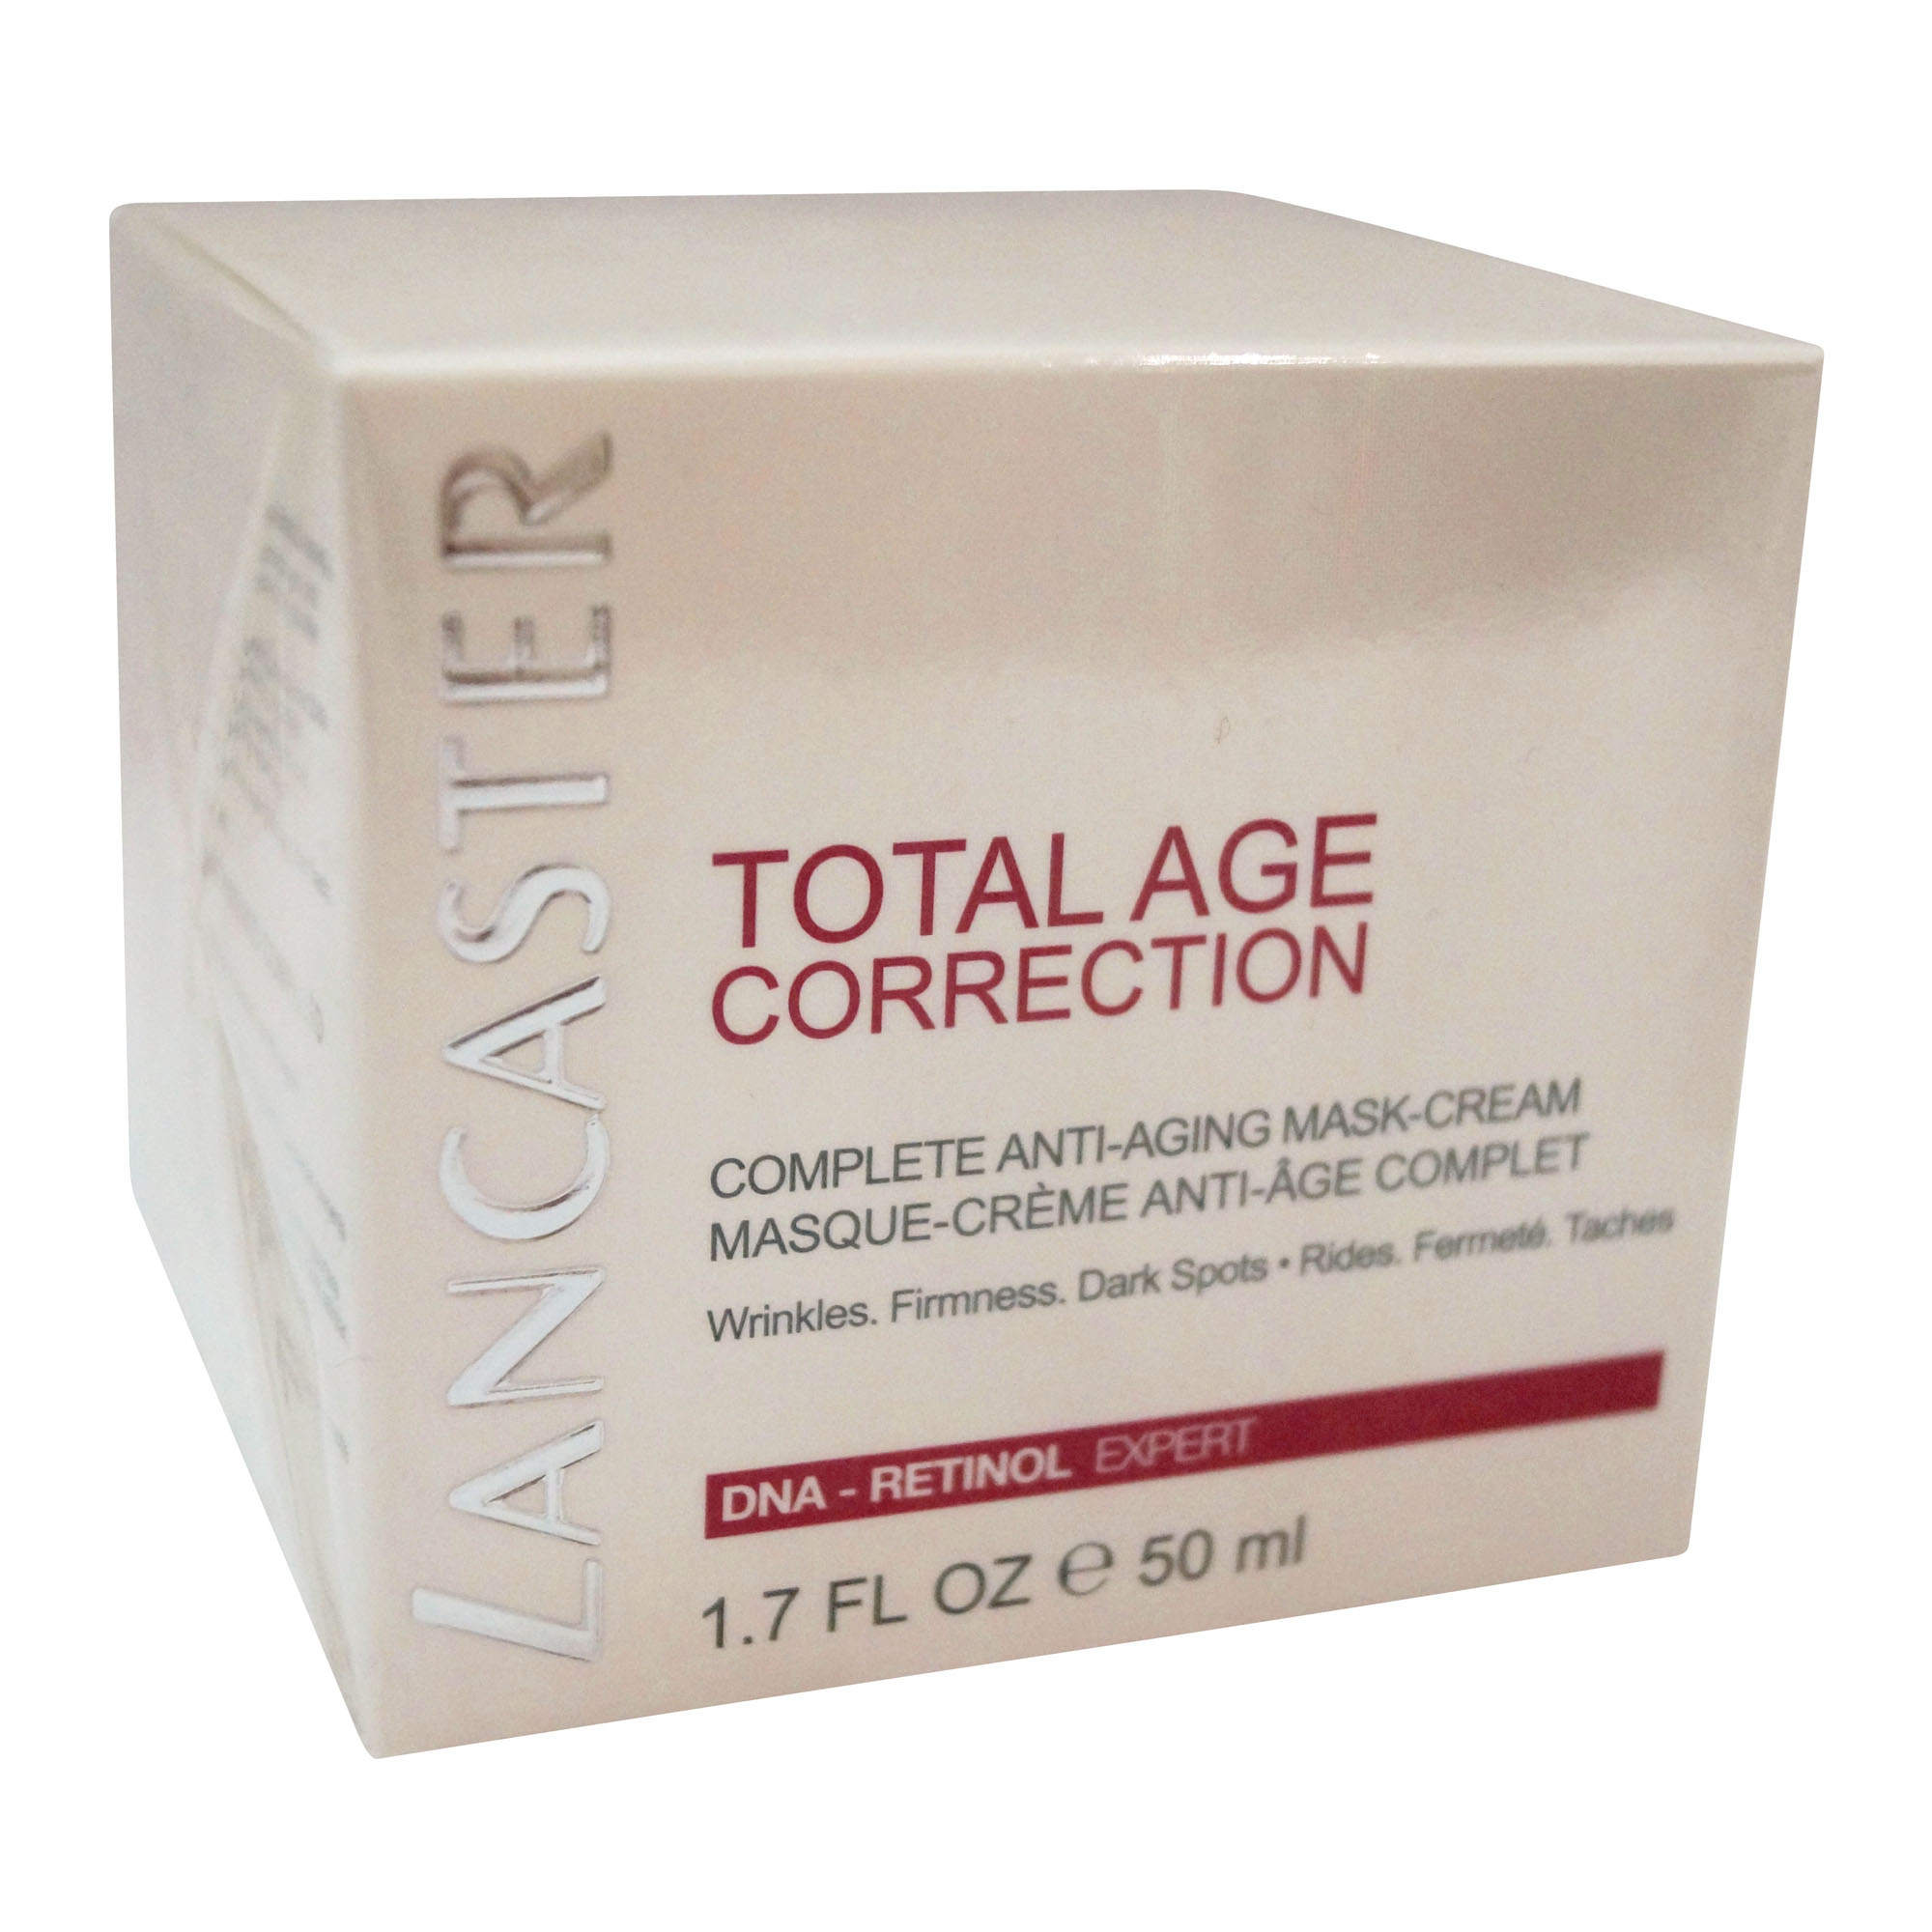 Lancaster Total Age Correction Anti Aging Mask Cream, 50 ml